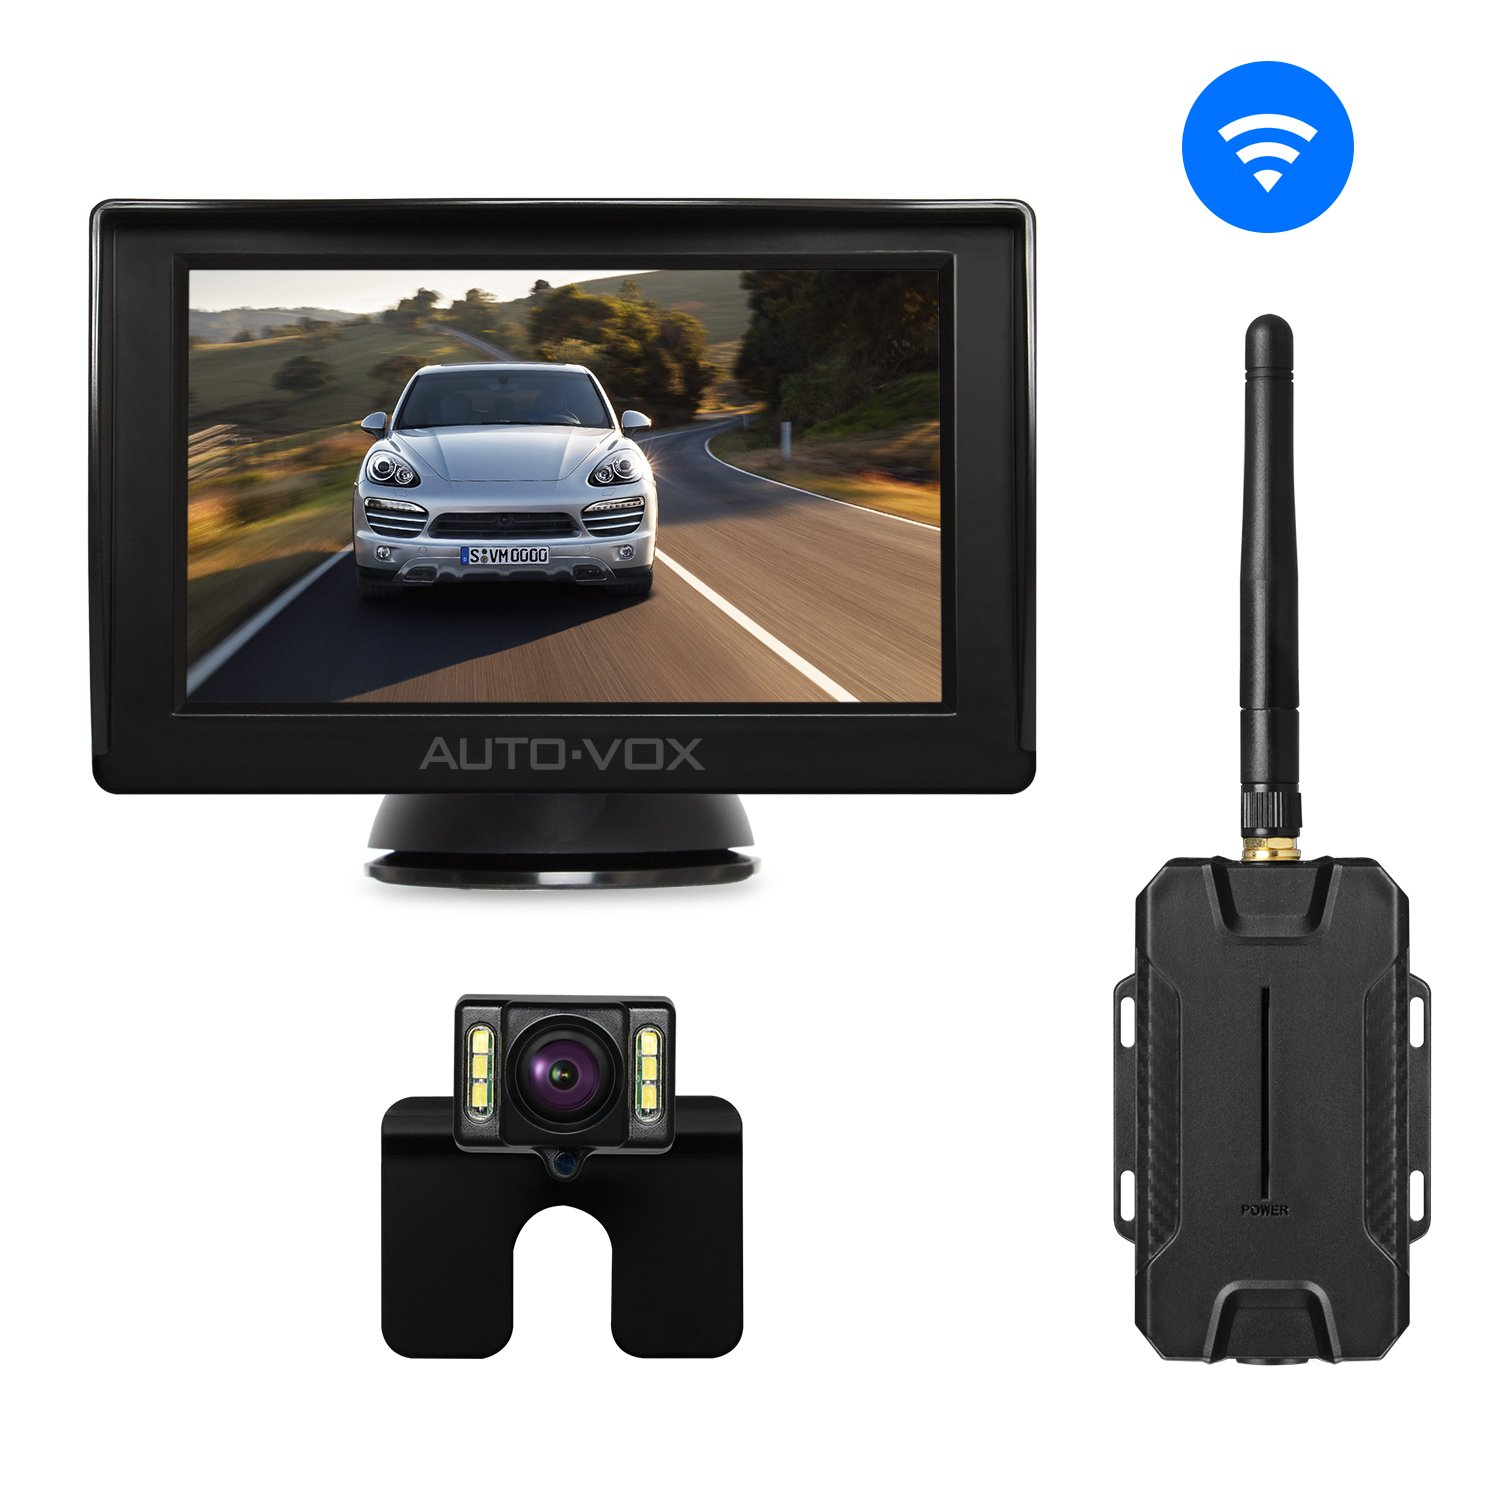 AUTO-VOX W1 Wireless Backup Camera Kit, Back Up Car Camera with 4.3'' LCD Monitor+ IP 68 Waterproof Rear View License Plate Reversing Camera LED Super Night Vision for Cars,Truck,Van,Camper